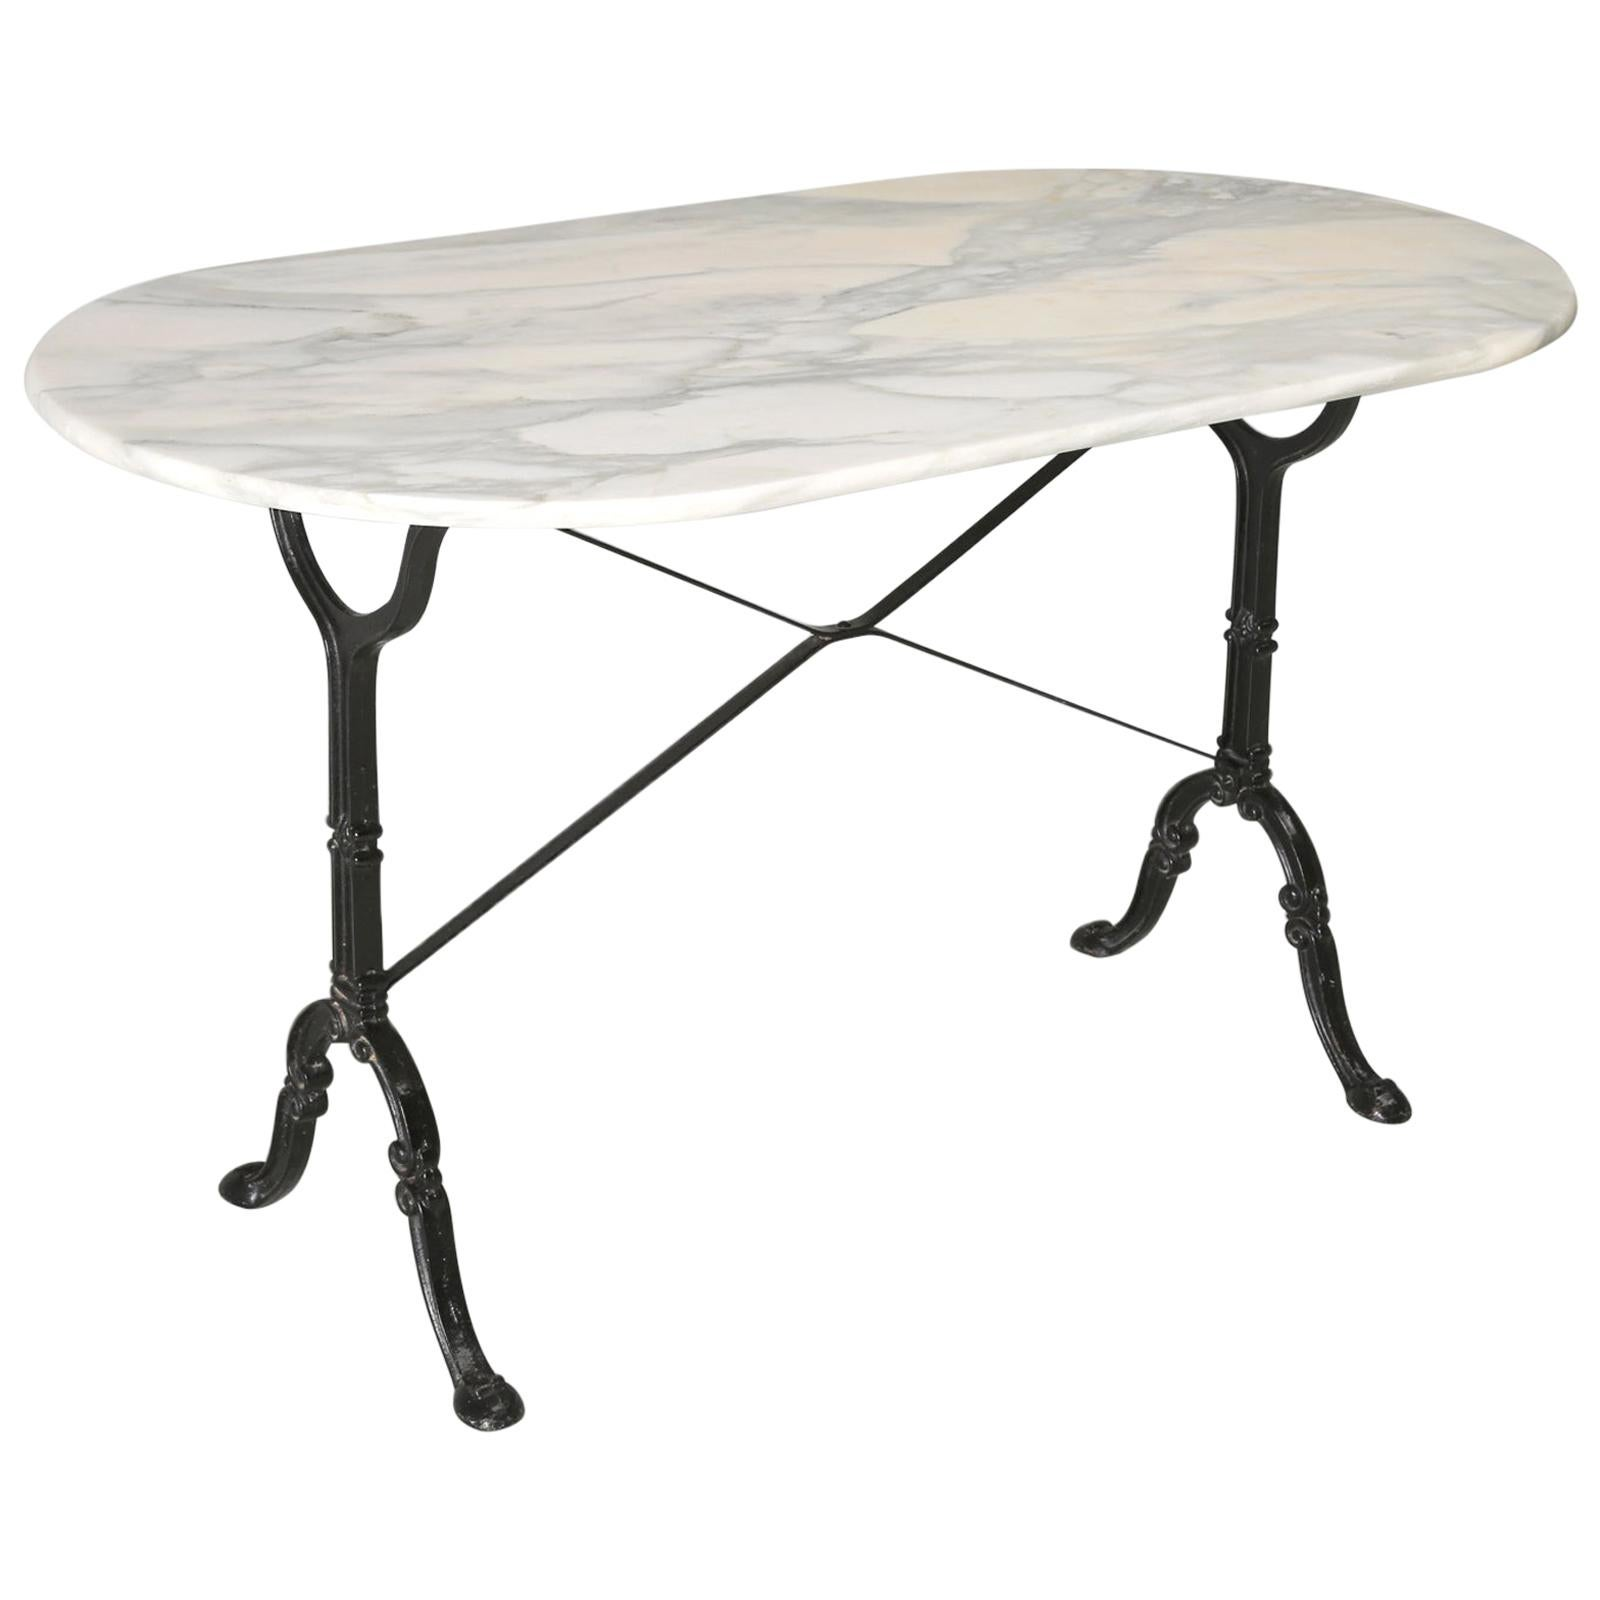 Antique French Bistro Table with an Exceptional Beautiful Honed Marble Top